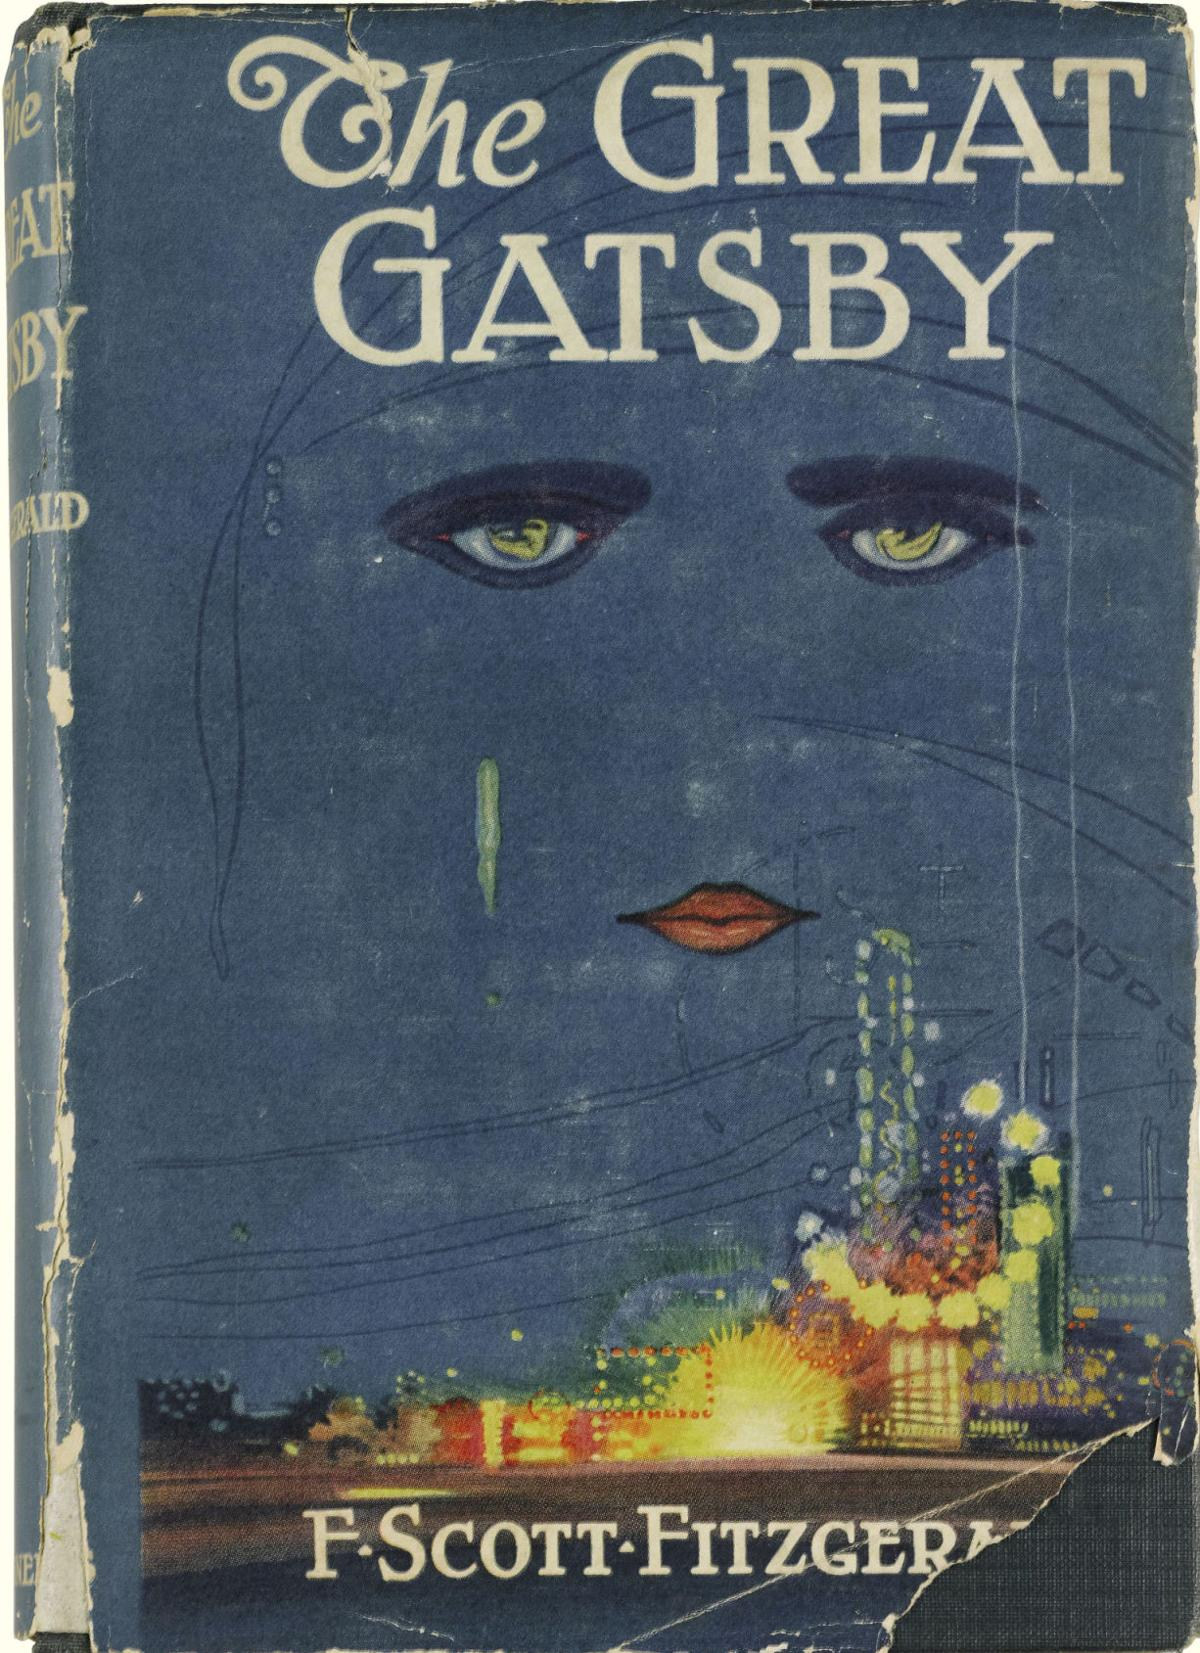 the emptiness of materialism in the great gatsby by f scott fitzgerald Through the characters in the great gatsby and american beauty, sam mendes and fs fitzgerald seem to imply that this latter way is better and yields more fruitful results bibliography:commager, henry steele.